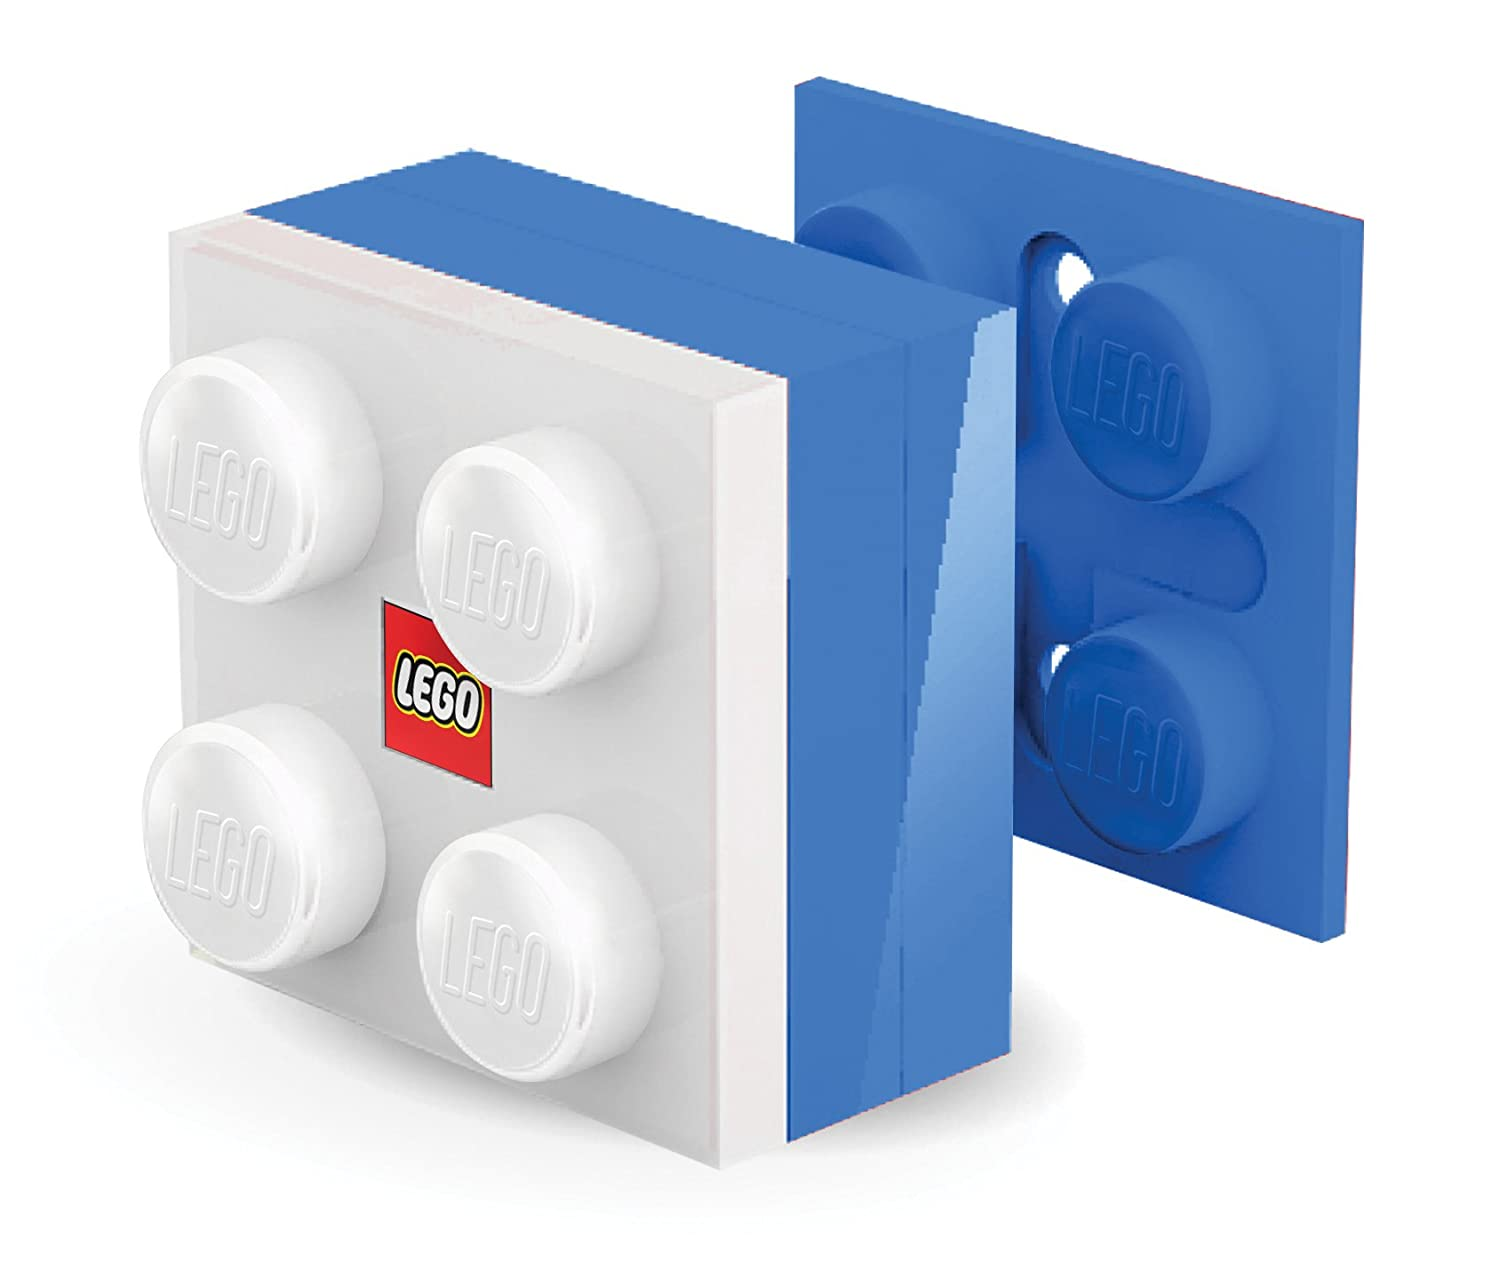 Lego Accessories For Bedroom Lego Bedding And Bedroom Decor